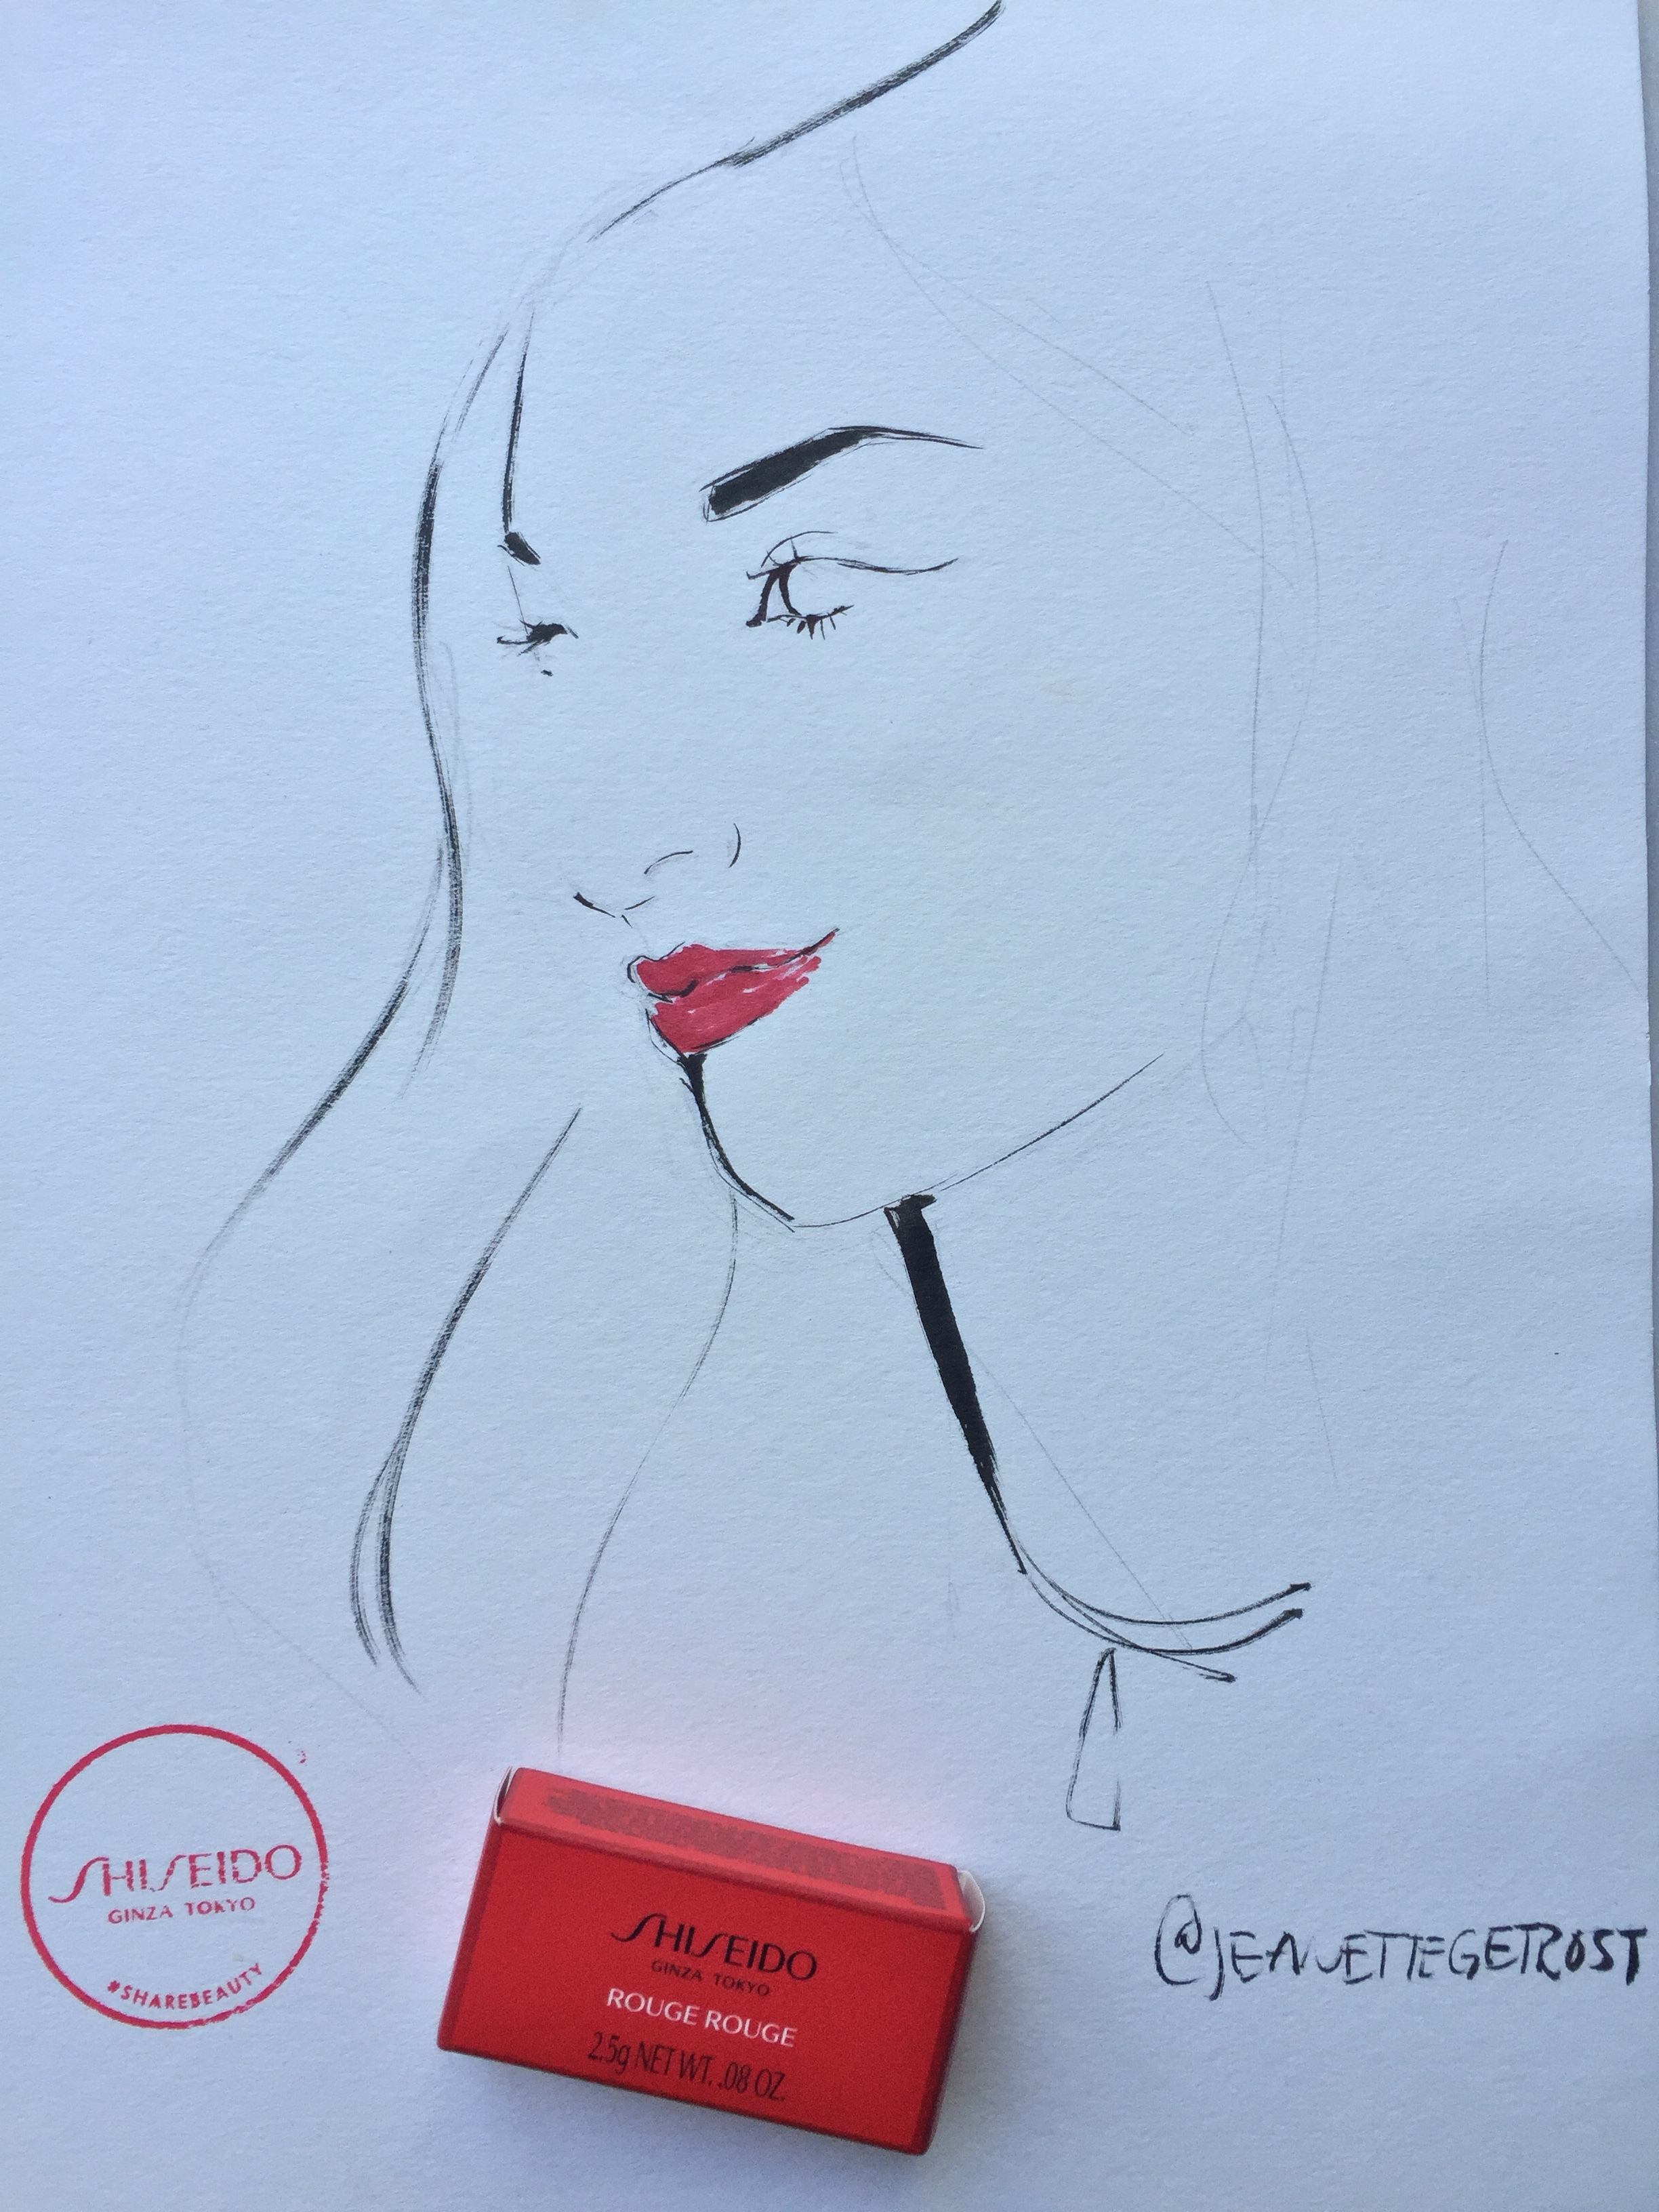 Illustration by Jeanette Getrost for Shiseido